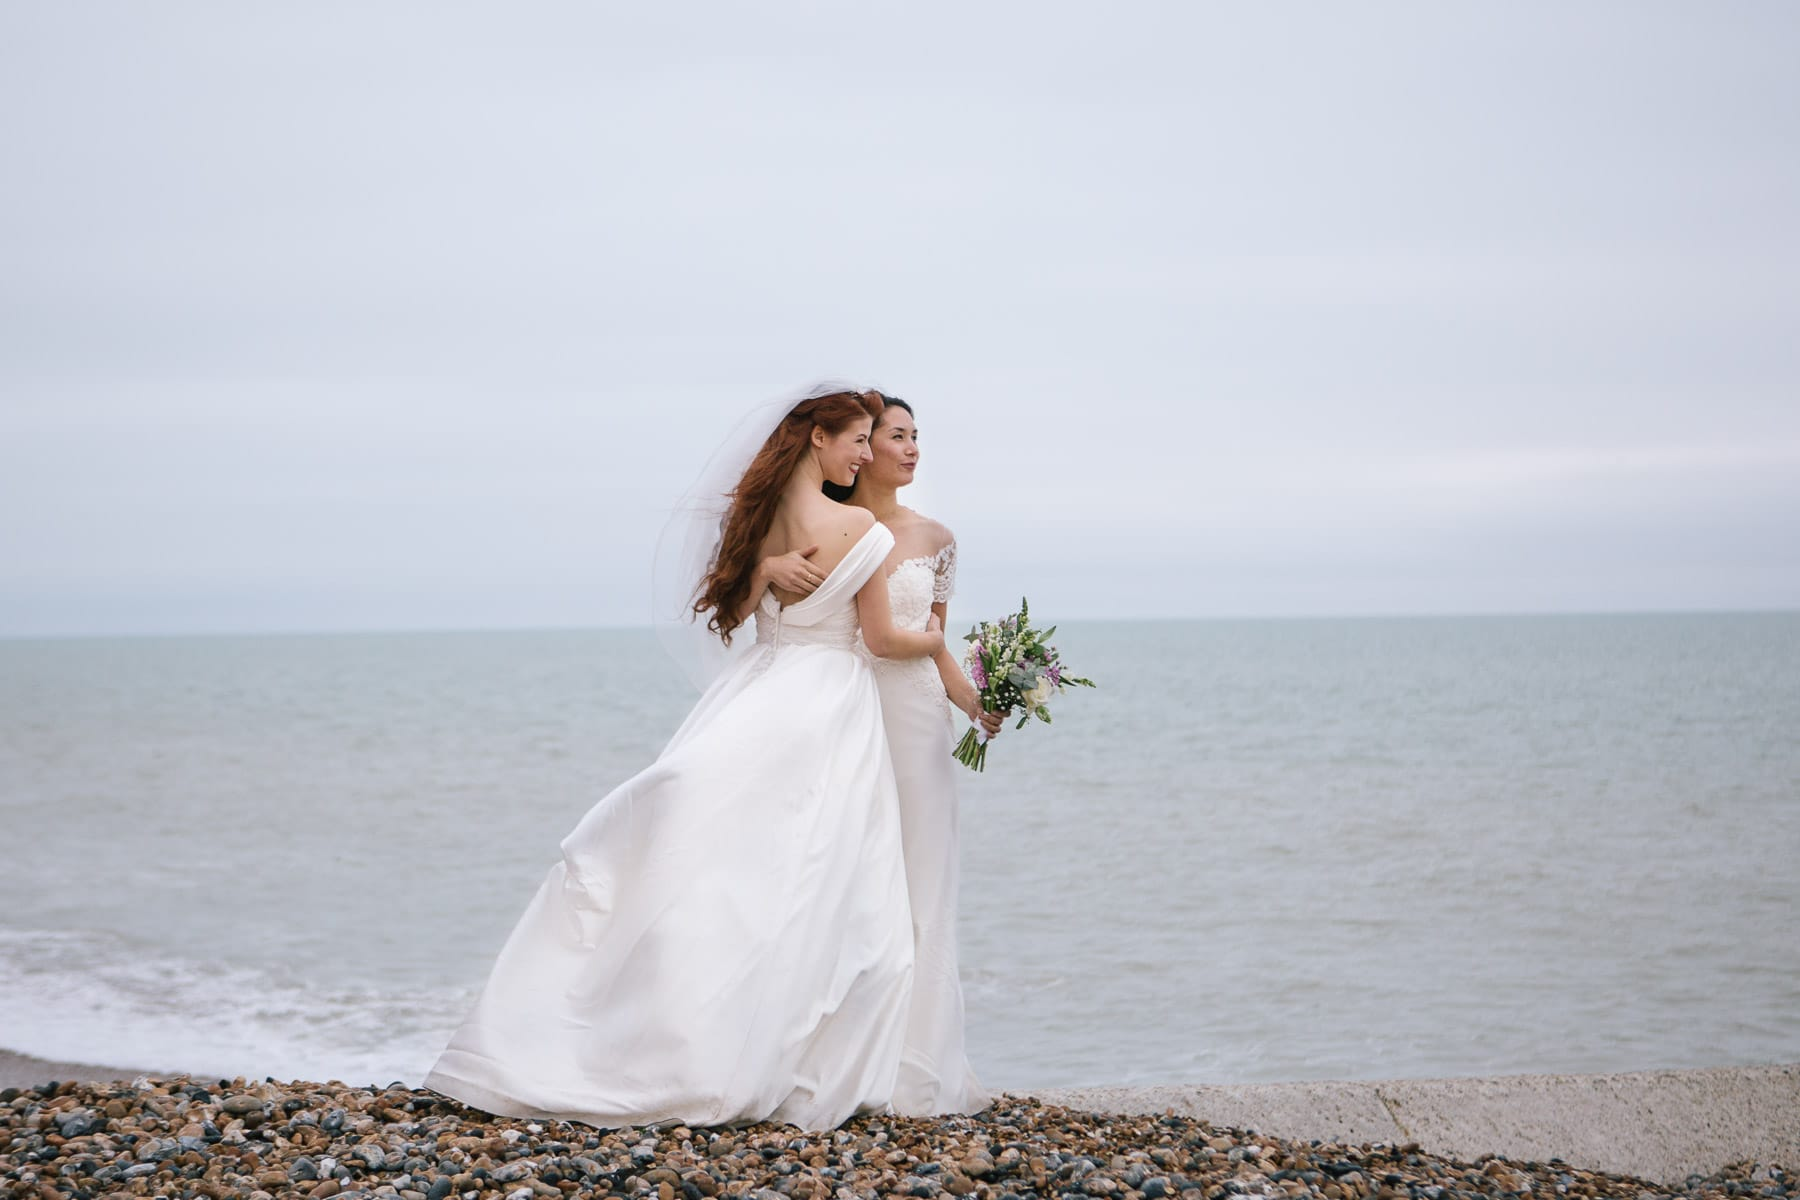 The bridal couple hold each other close while looking out to sea